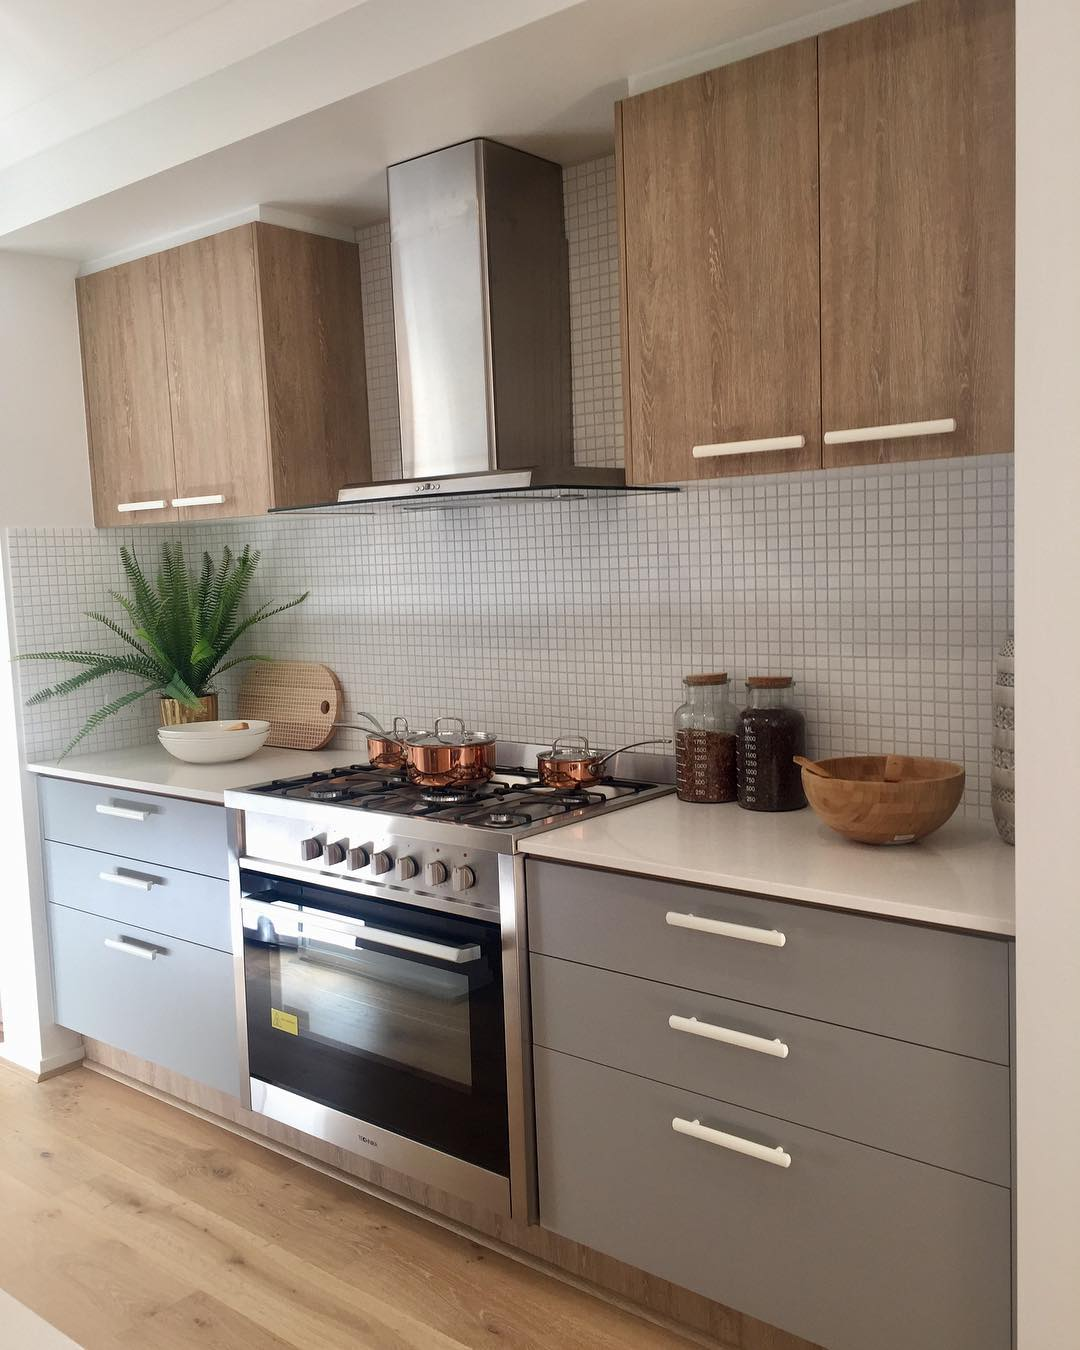 Kitchen Cabinet Ideas 2021: Top Trends and Colors for ...